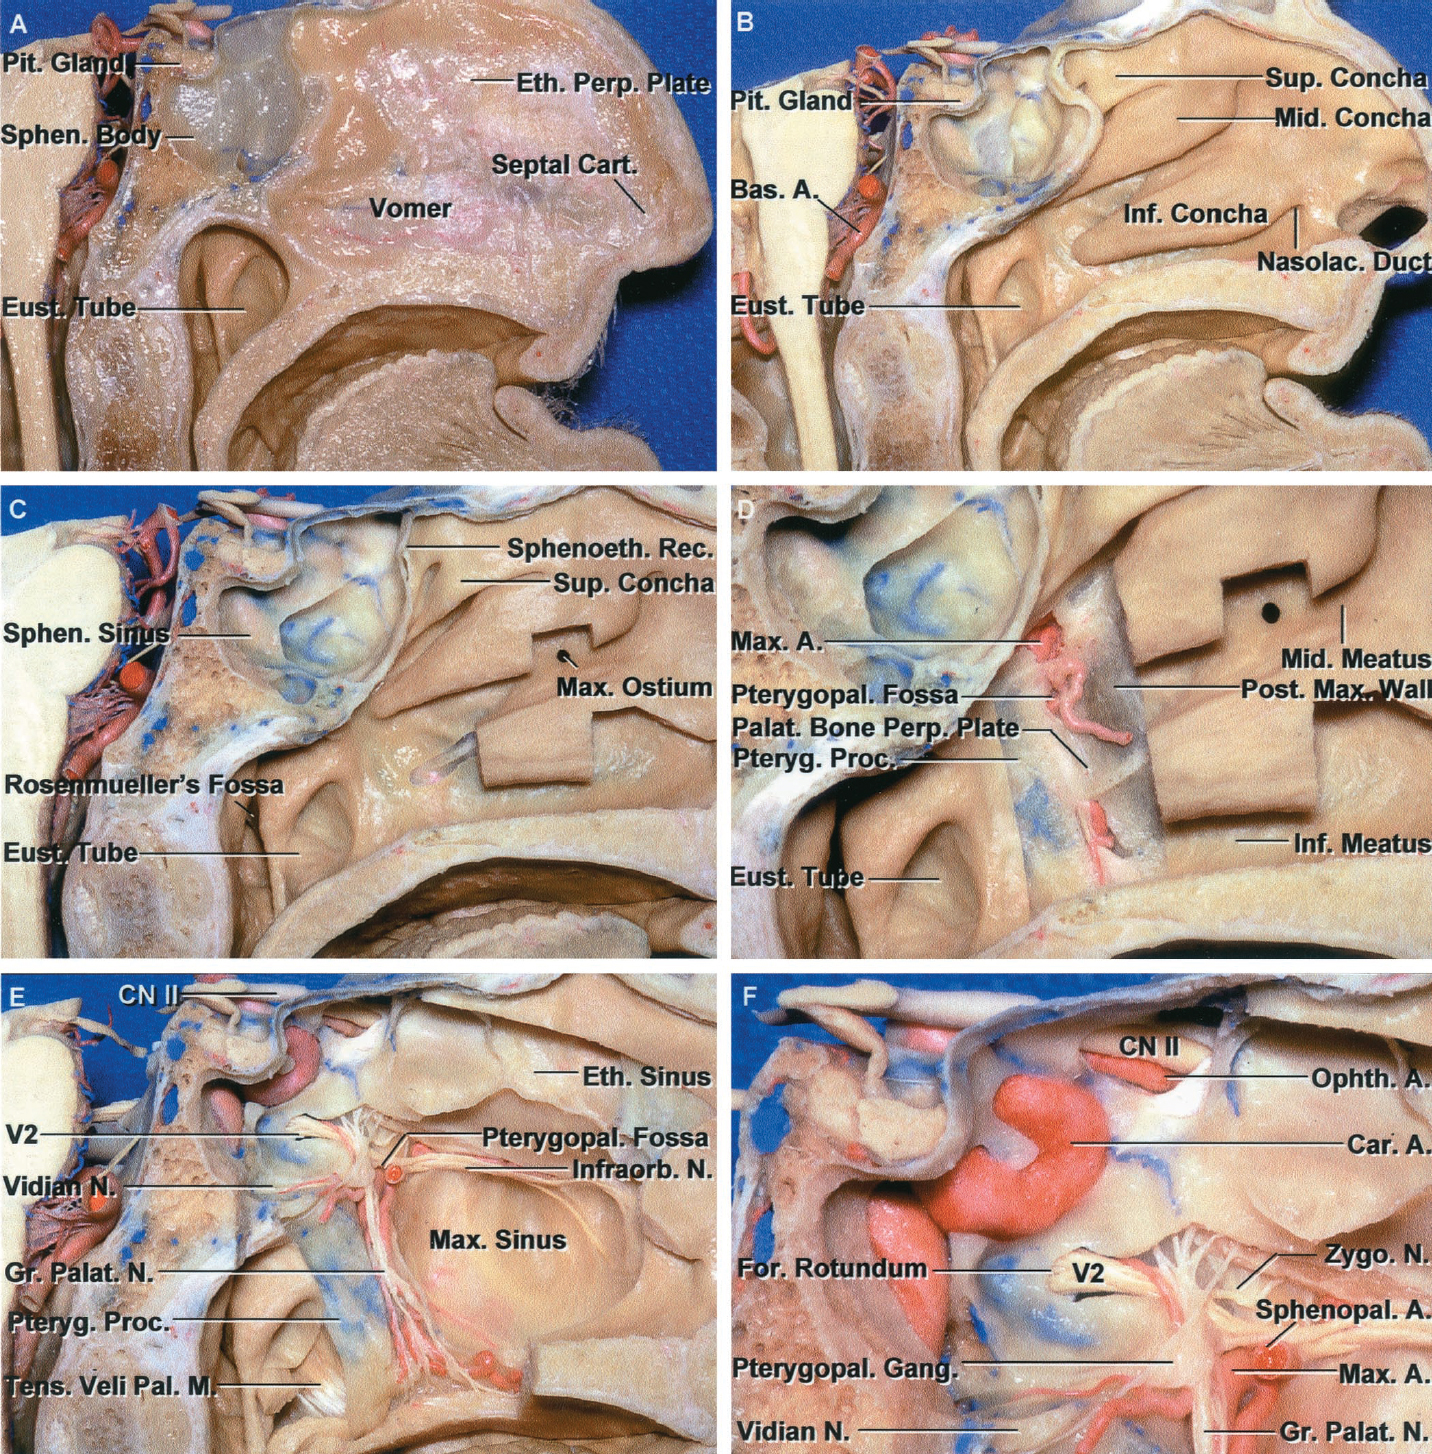 Figure 8.8. Nasal pathway to the sphenoid sinus. Stepwise dissections showing the structures that form the lateral limit of the transnasal route to the sphenoid sinus and sella. A, sagittal section to right of the midline. The nasal septum, along which the transsphenoidal approach is directed, is formed above by the perpendicular plate of the ethmoid, anteriorly by the nasal septal cartilage, and below by the vomer. The vomer articulates with the anteroinferior part of the sphenoid body, and the perpendicular plate articulates with the anterior face. The sphenoid sinus is located in the body of the sphenoid bone. B, the sagittal section has been extended to the right of the midline. The nasal concha and meatus and the eustachian tubes are in the lateral margin of the exposure. C, a portion of the middle and inferior turbinates has been removed. The ostia of the maxillary and frontal sinuses opens into the middle meatus located below the middle turbinate. The nasolacrimal duct opens below the lower turbinate into the inferior meatus. Rosenmüller's fossa is located behind the eustachian tube. D, the mucosa in the lateral margin of the nasal cavity and the posterior part of the inferior and middle turbinates have been removed to expose the pterygoid process and the posterior maxillary wall, which form the posterior and anterior boundaries of the pterygopalatine fossa, respectively. The eustachian tube opens into the nasopharynx at the posterior edge of the pterygoid process. The terminal branches of the maxillary artery pass through the pterygopalatine fossa, located between the posterior maxillary wall and the pterygoid process, to enter the posterosuperior part of the nasal cavity at the anteroinferior margin of the sphenoid sinus. The medial wall of the pterygopalatine fossa is formed by the perpendicular plate of the palatine bone. E, the medial wall of the maxillary sinus has been opened to expose the infraorbital nerve, which arises in the pterygopalatine fossa a